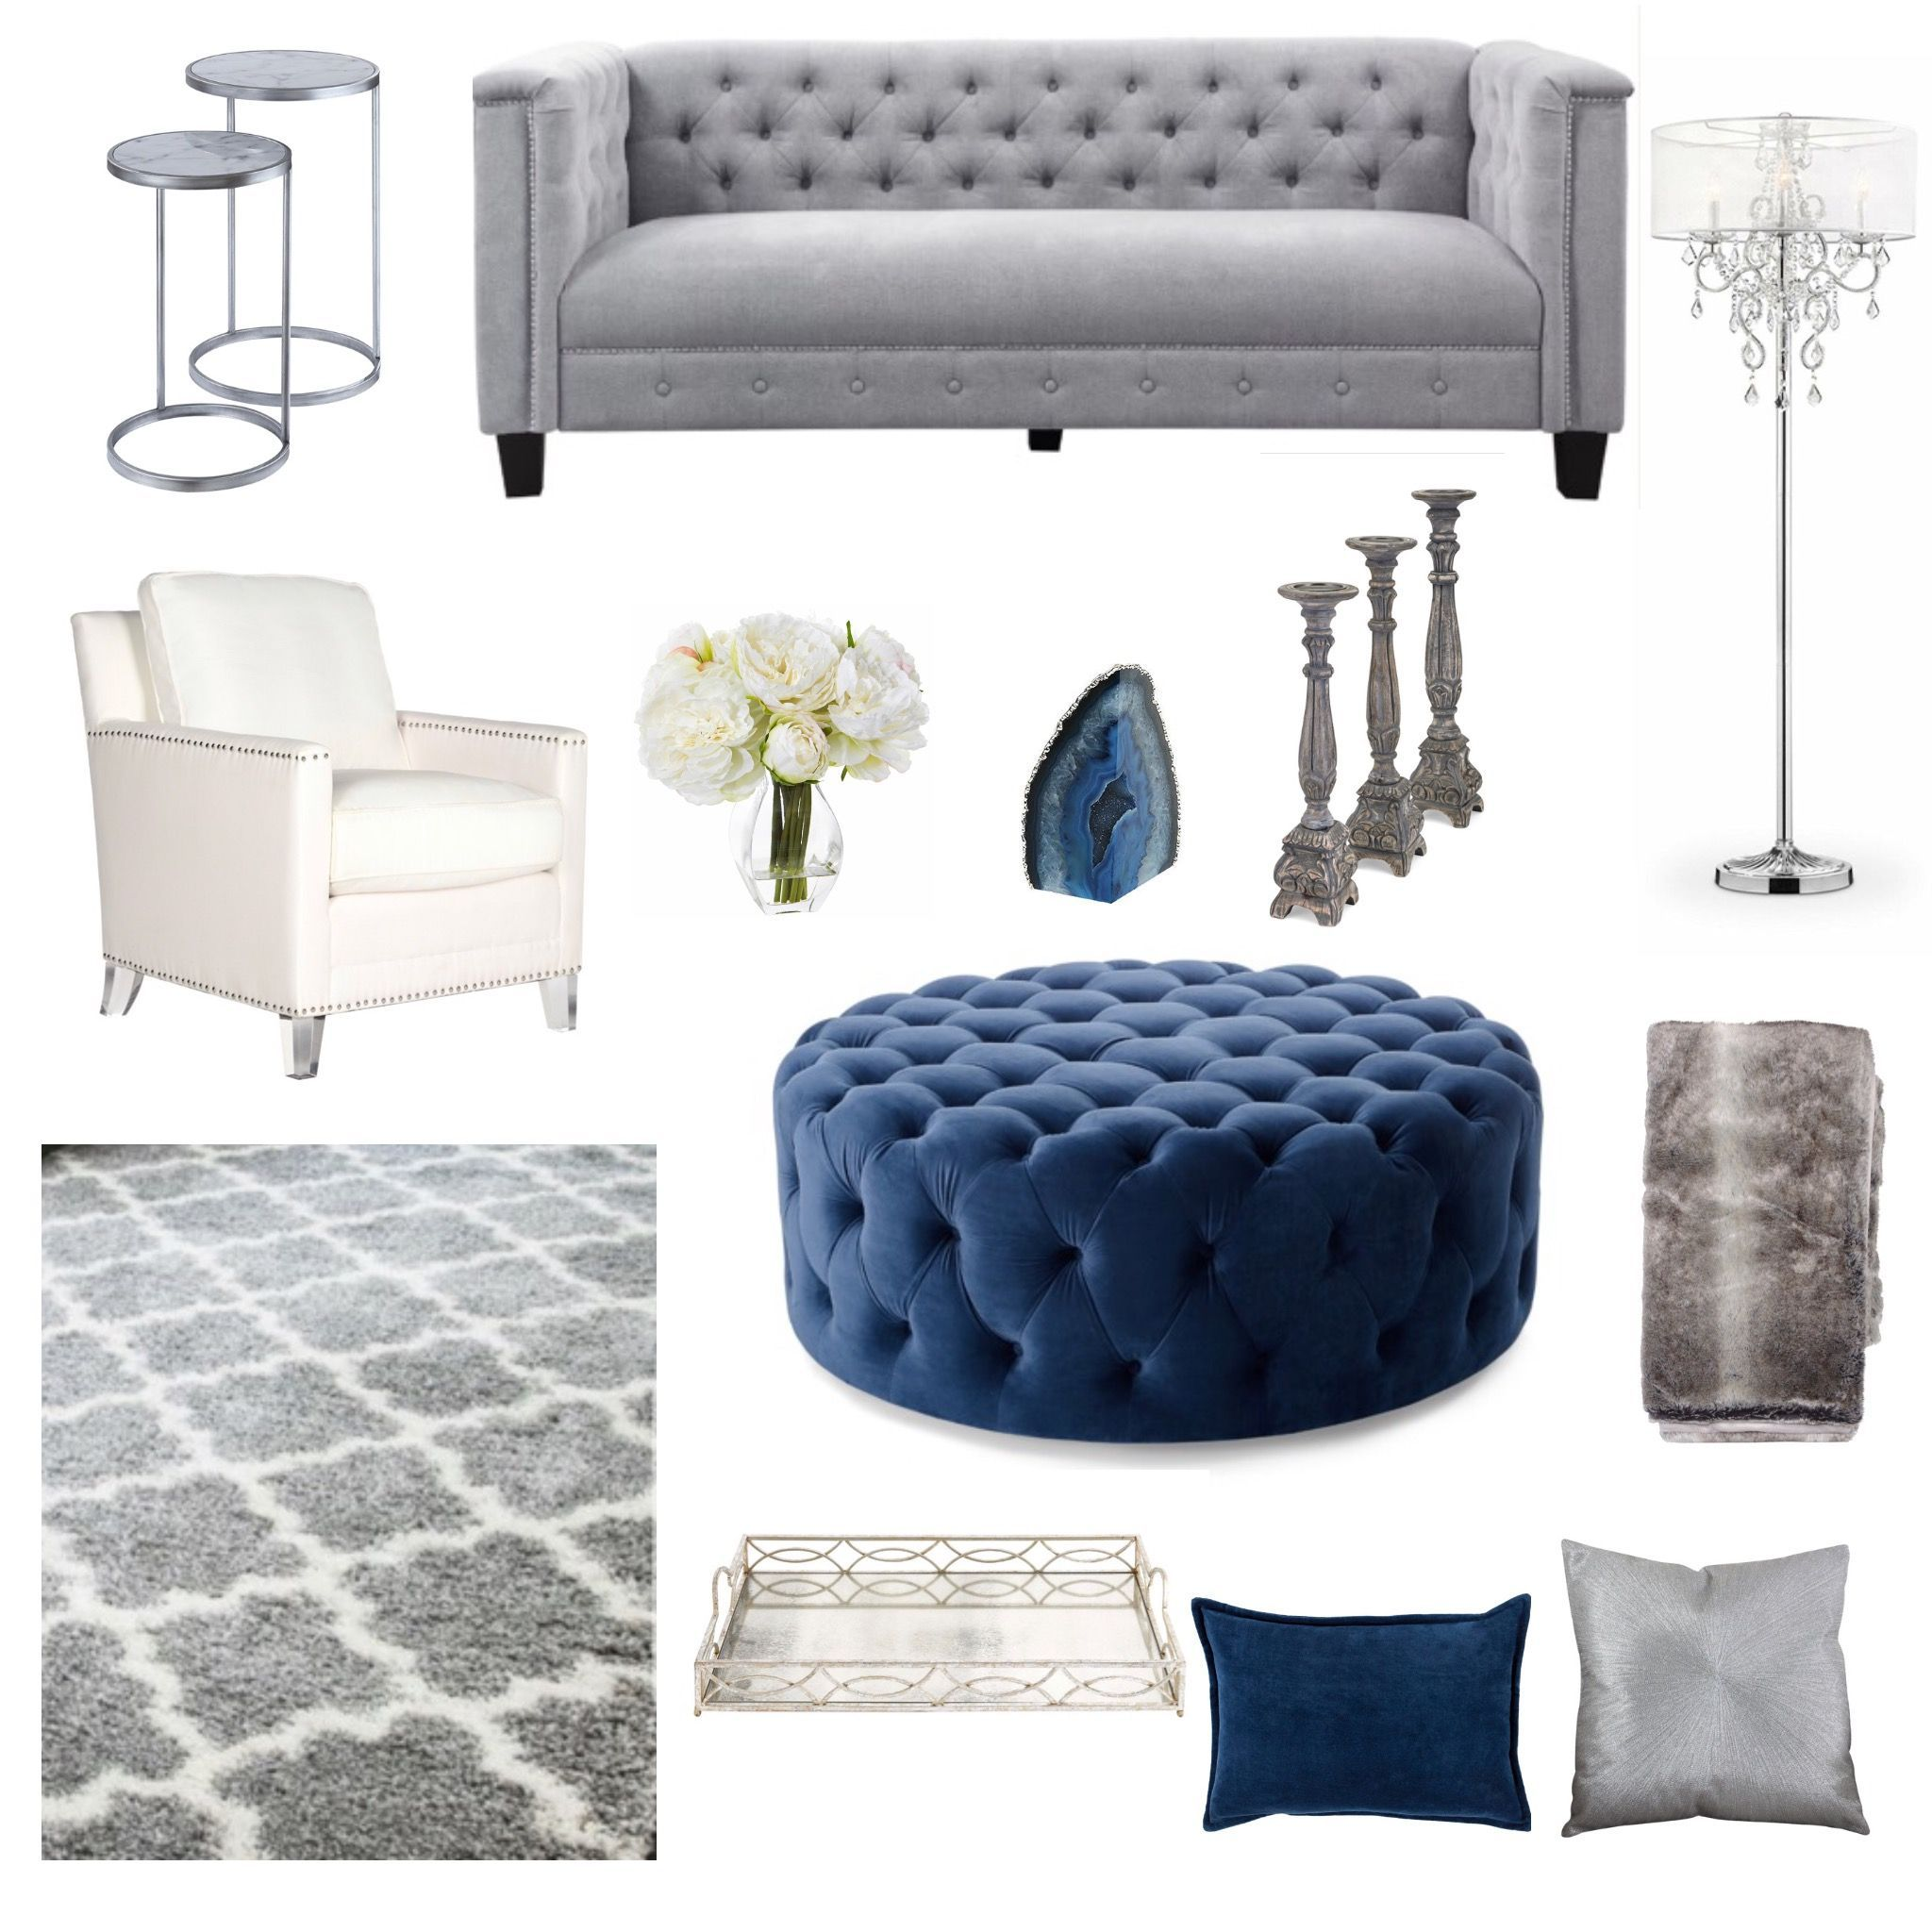 10+ Top Silver And White Living Room Decor